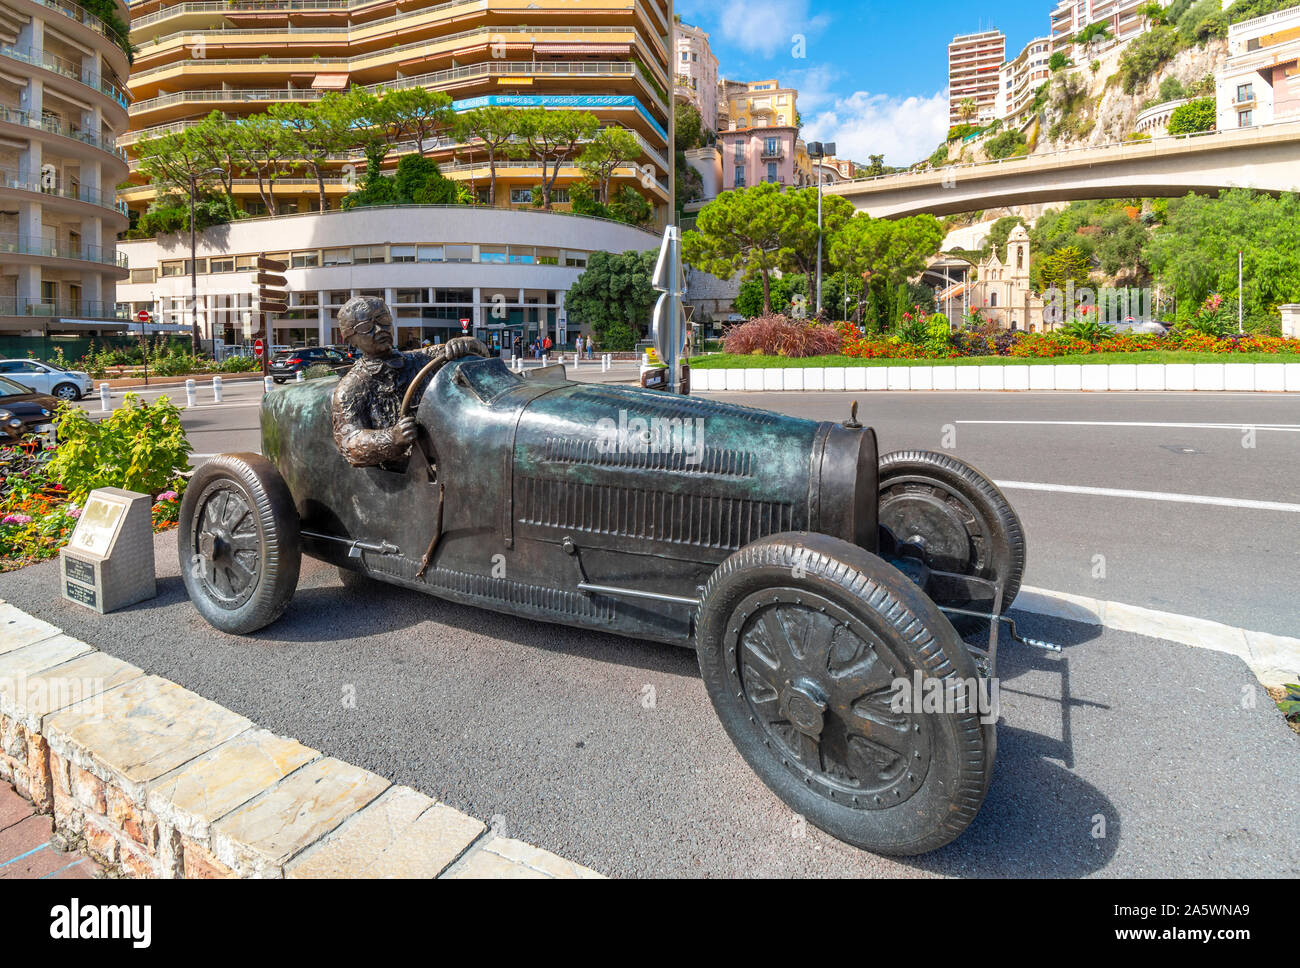 The statue of William Grover in his 1929 Bugatti, the first winner of the Monaco Formula 1 Grand Prix on the street circuit in front of Sainte-Dévote. Stock Photo